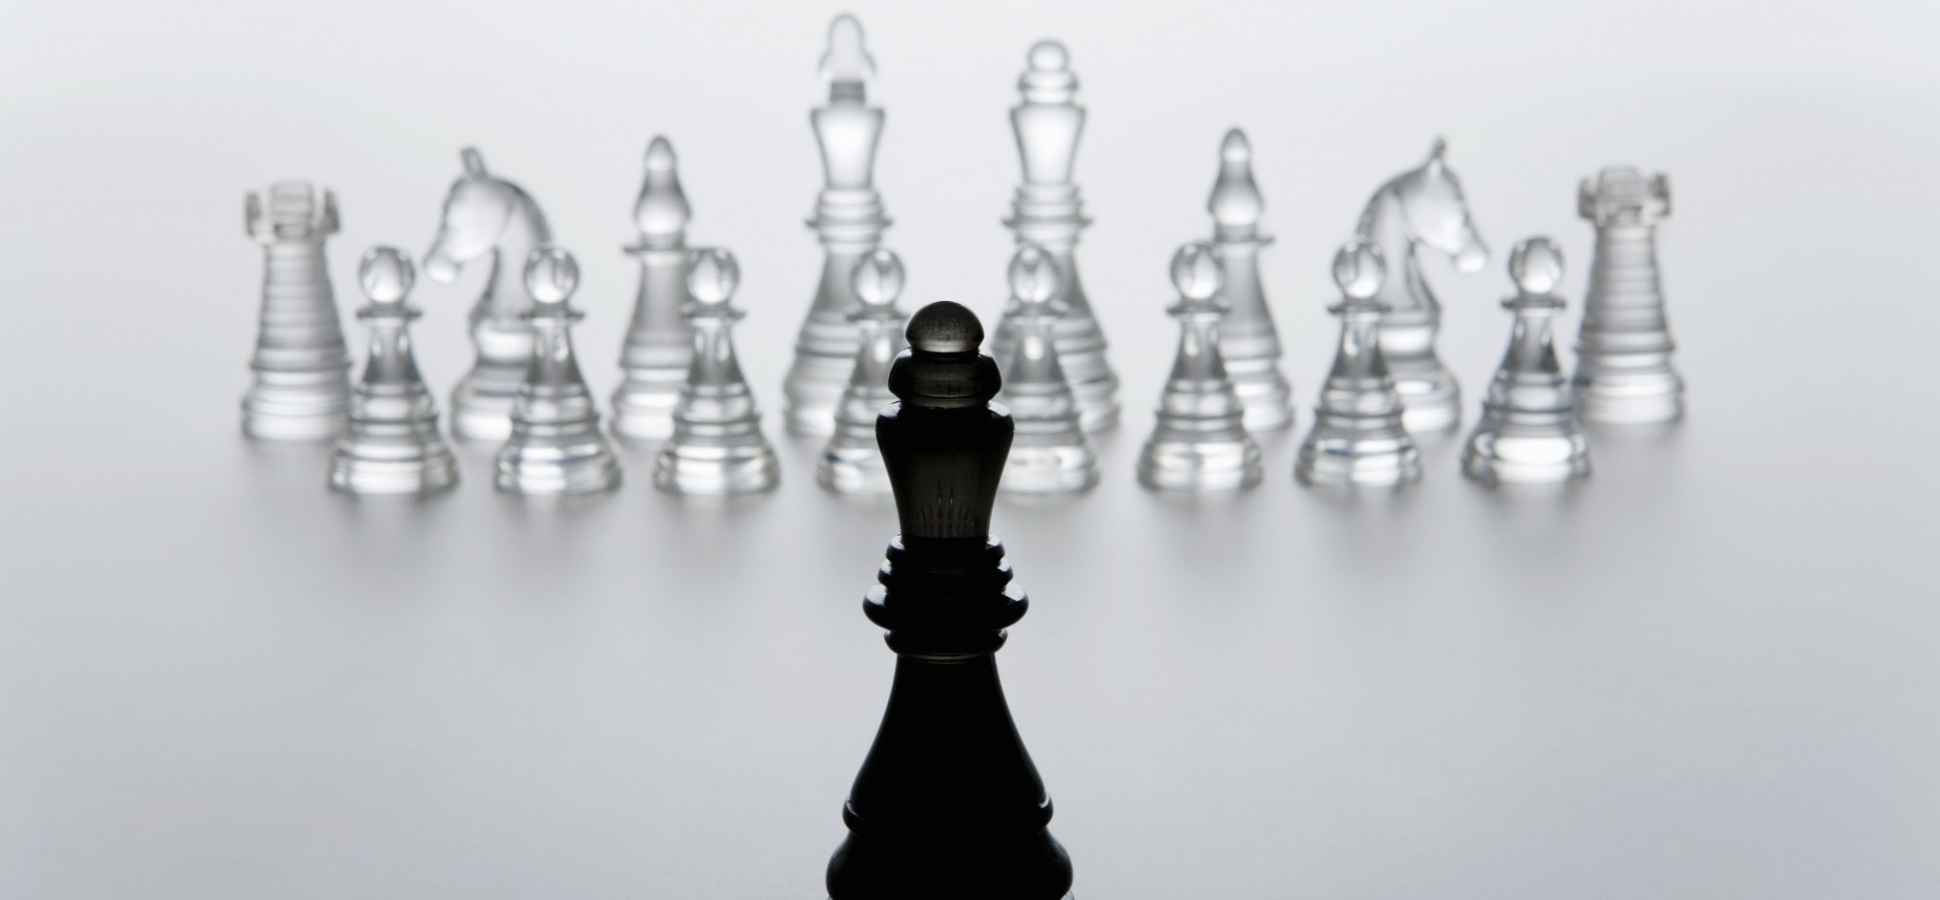 3 Surprising Leadership Qualities You're Probably Missing